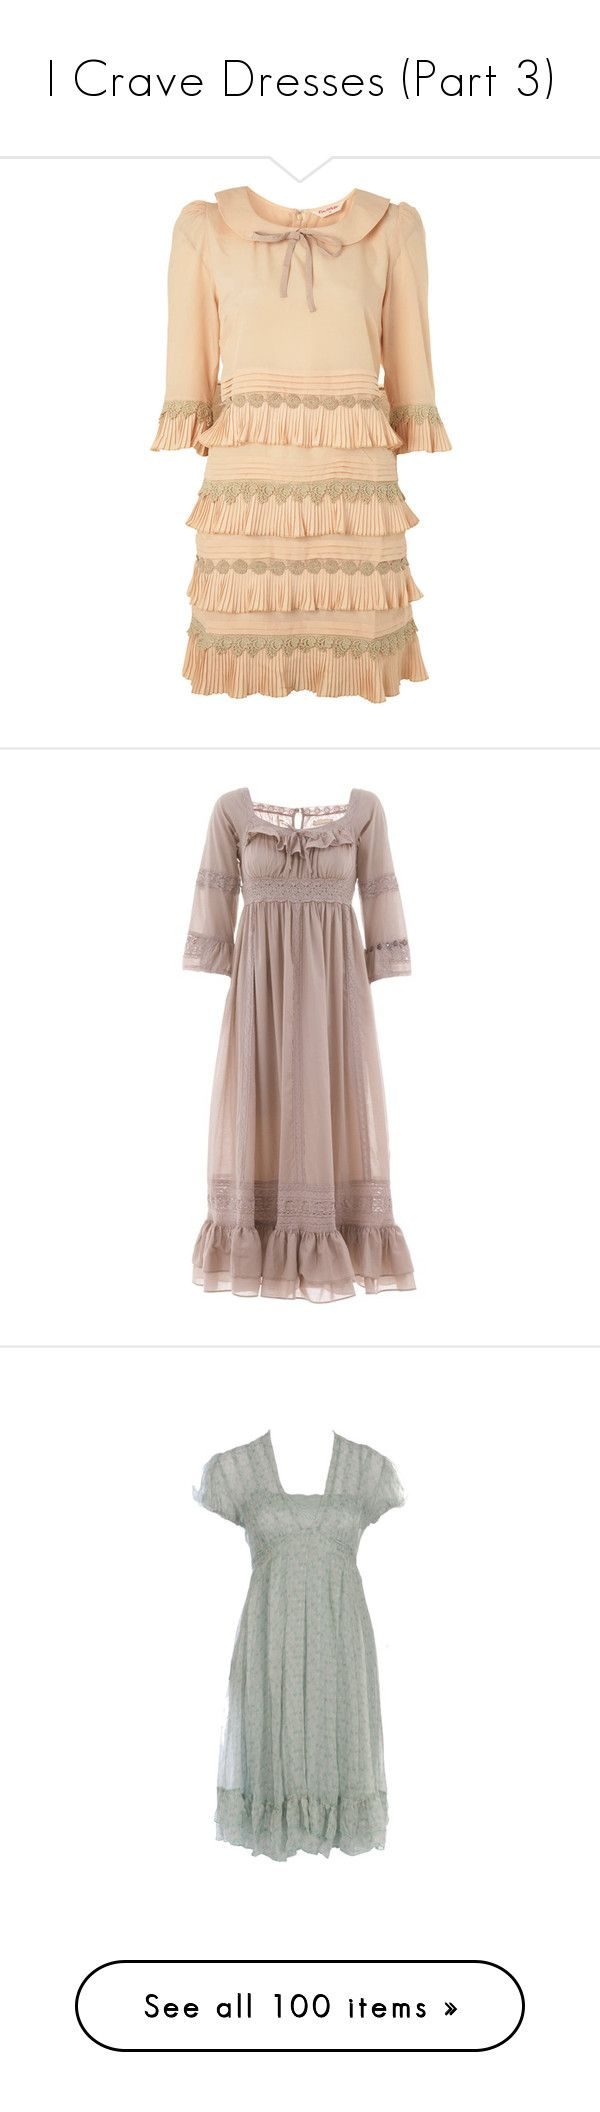 """""""I Crave Dresses (Part 3)"""" by pomegranateslushies ❤ liked on Polyvore featuring dresses, vestidos, haljine, short dresses, miss selfridge, miss selfridge dresses, beige short dress, mini dress, gowns and vintage"""